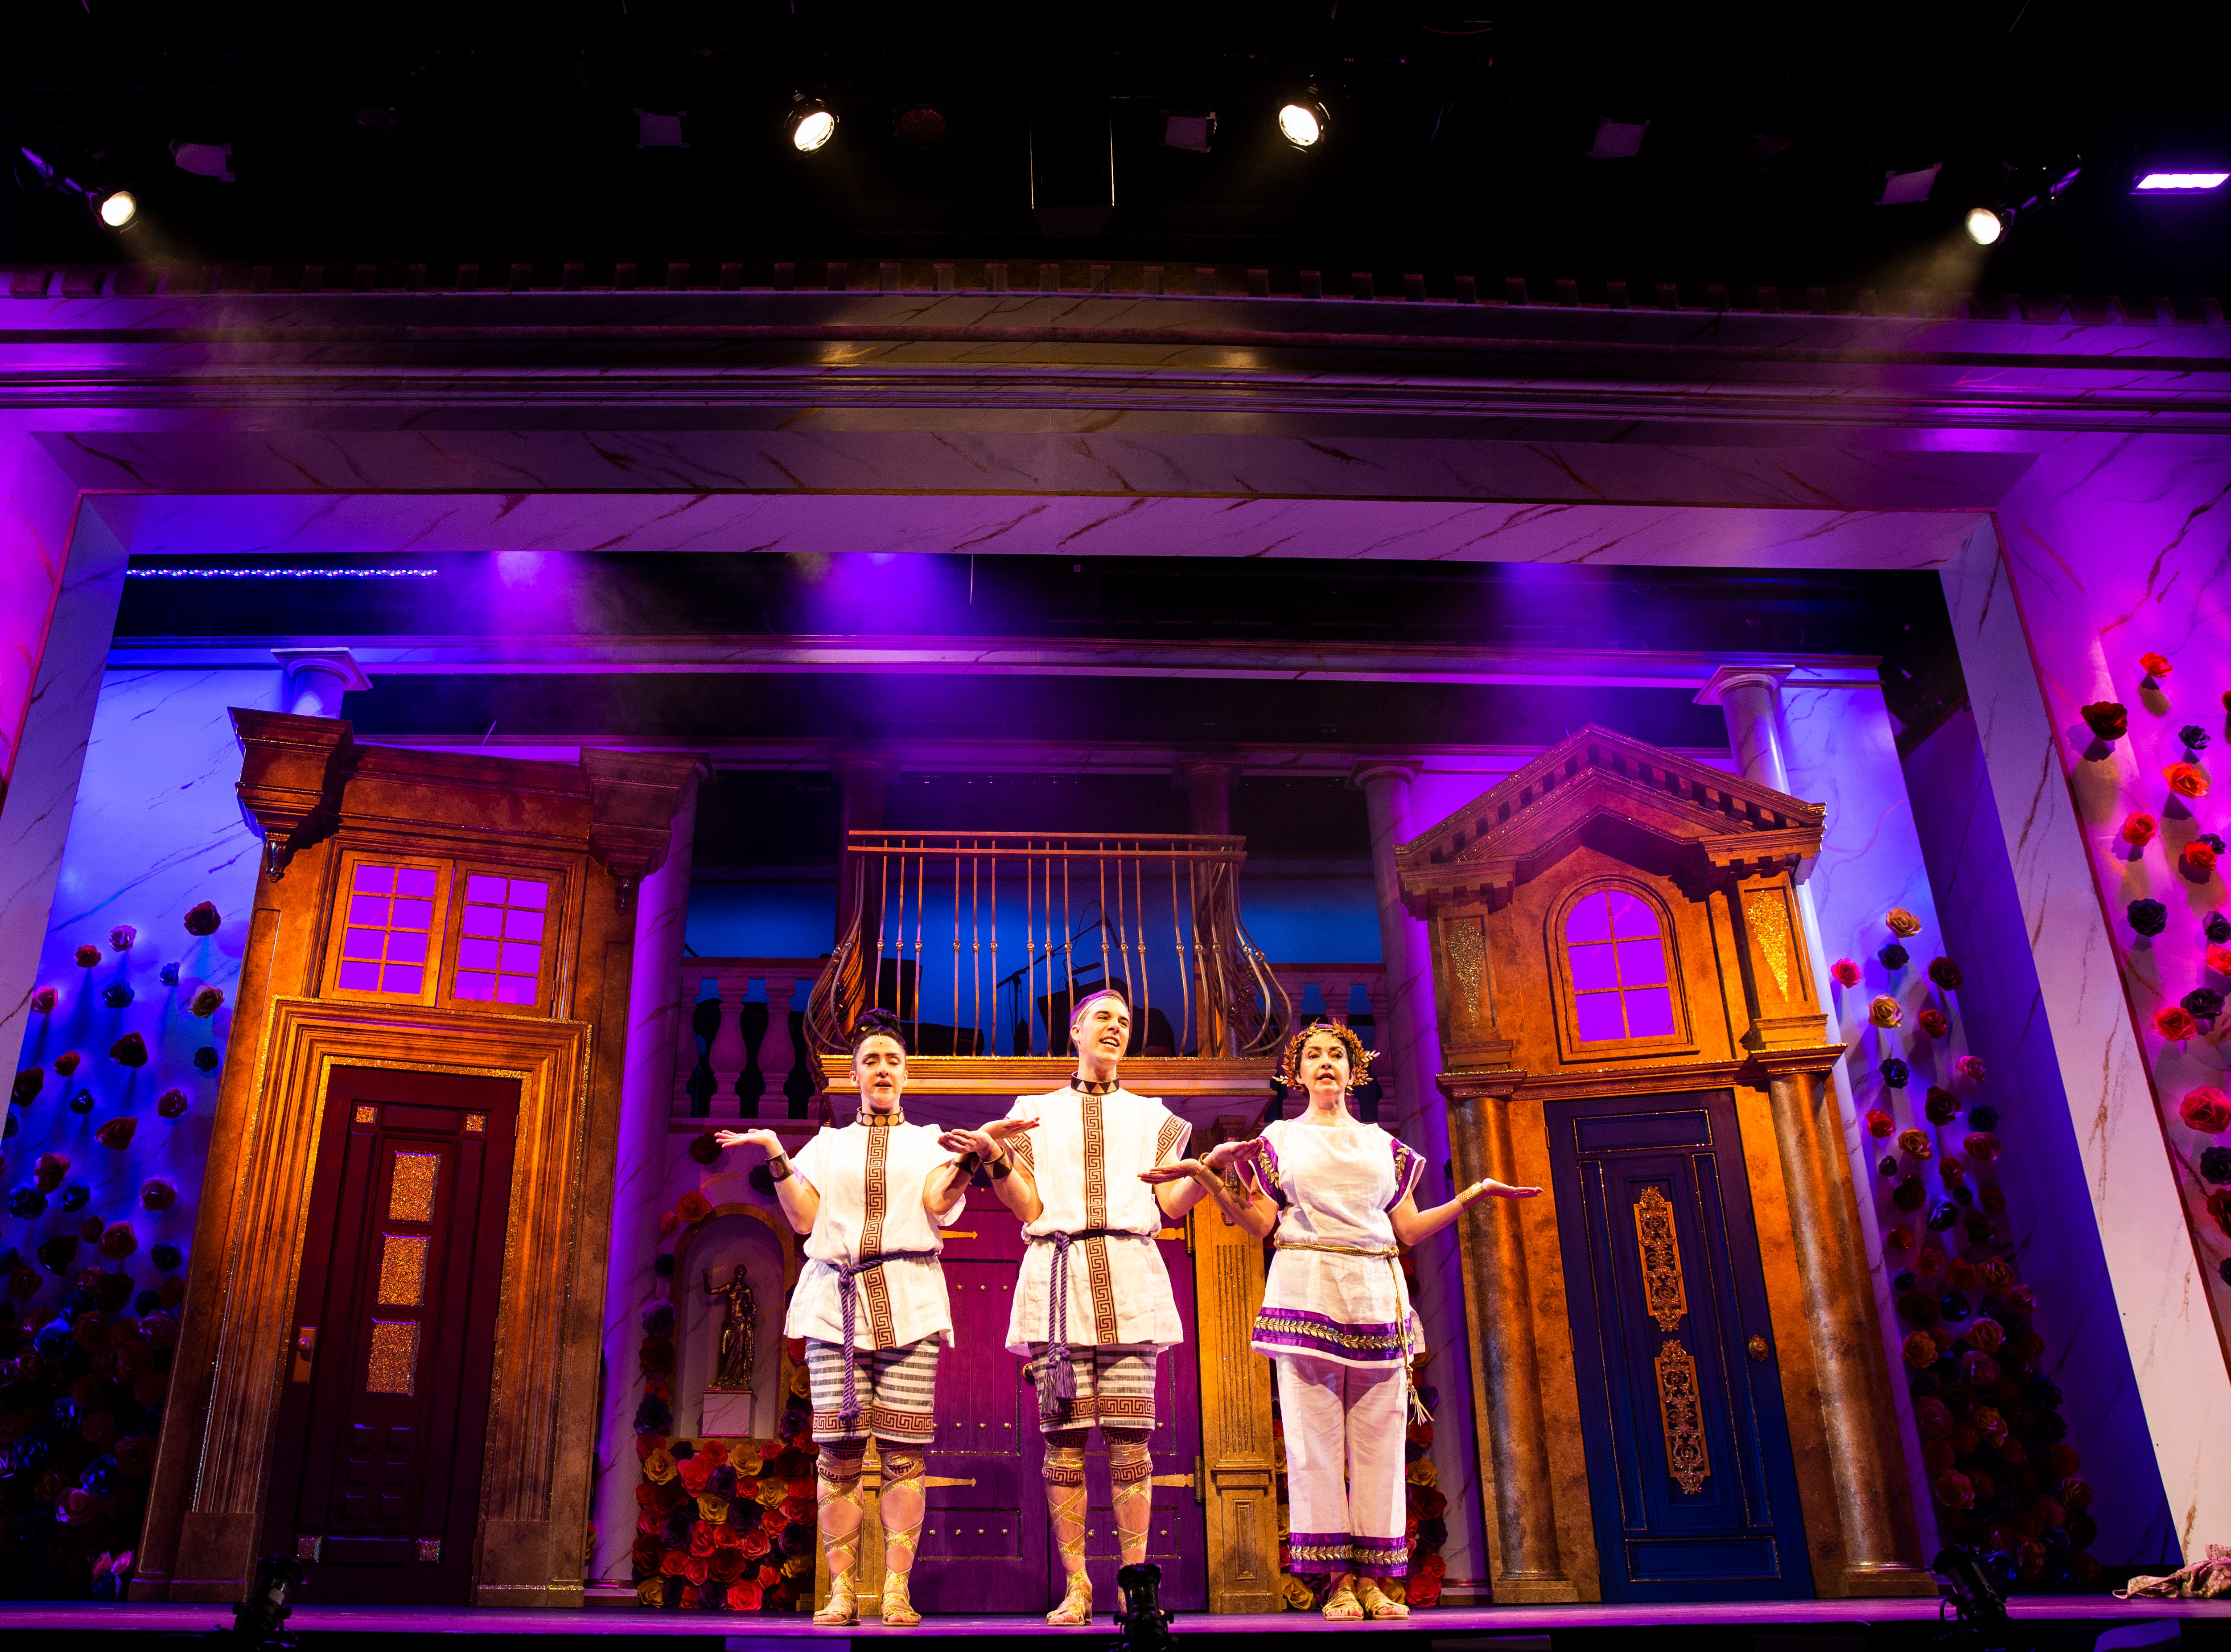 """Kristen Mengelkoch, from left, John Wascavage and Michele Ragusa rehearse a scene for Gulfshore Playhouse's upcoming production of """"A Funny Thing Happened on the Way to the Forum"""" at The Norris Center in Naples on Tuesday, Nov. 13, 2018."""